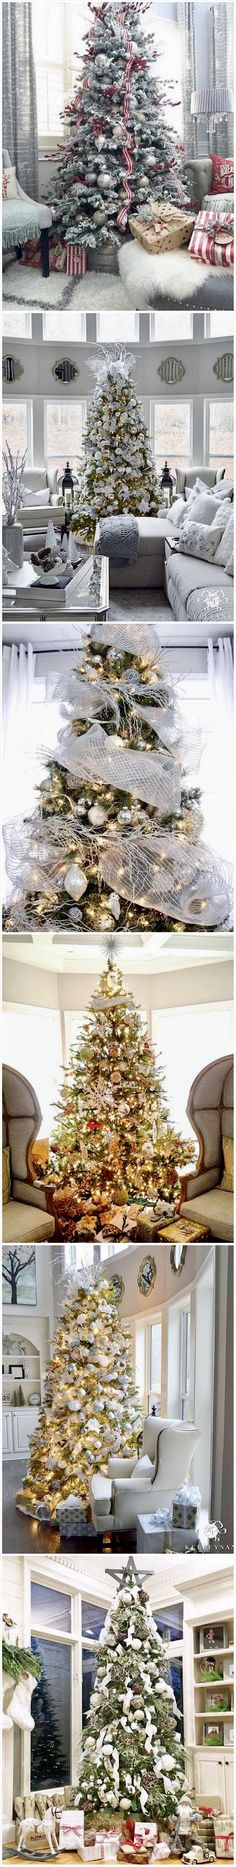 How to Decorate a Christmas Tree, in Just FIVE Steps! A beautiful ...